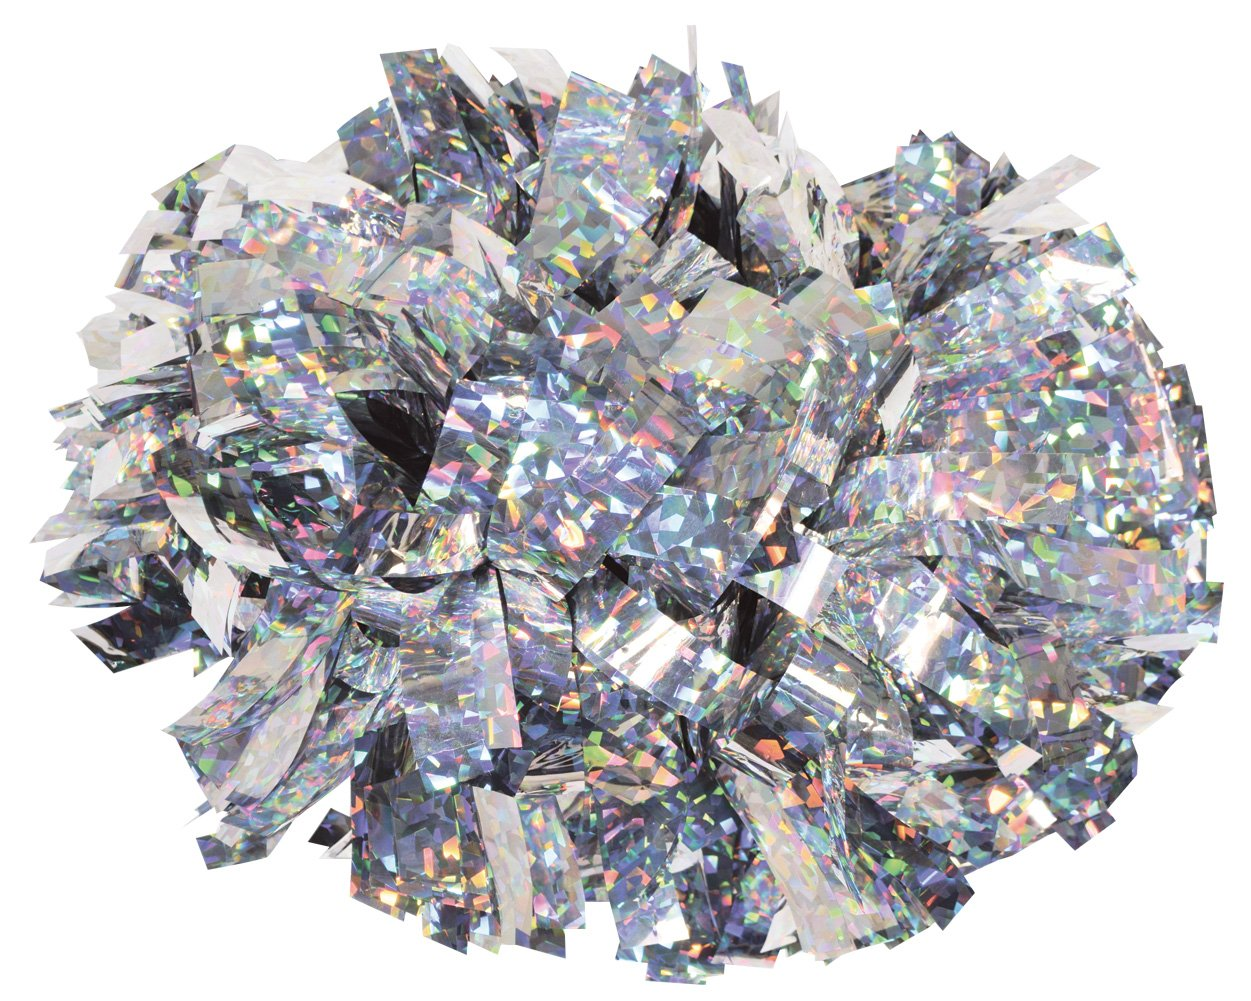 Sold Individually Chass/é 1 in-Stock Girls Crystal Holographic Pom